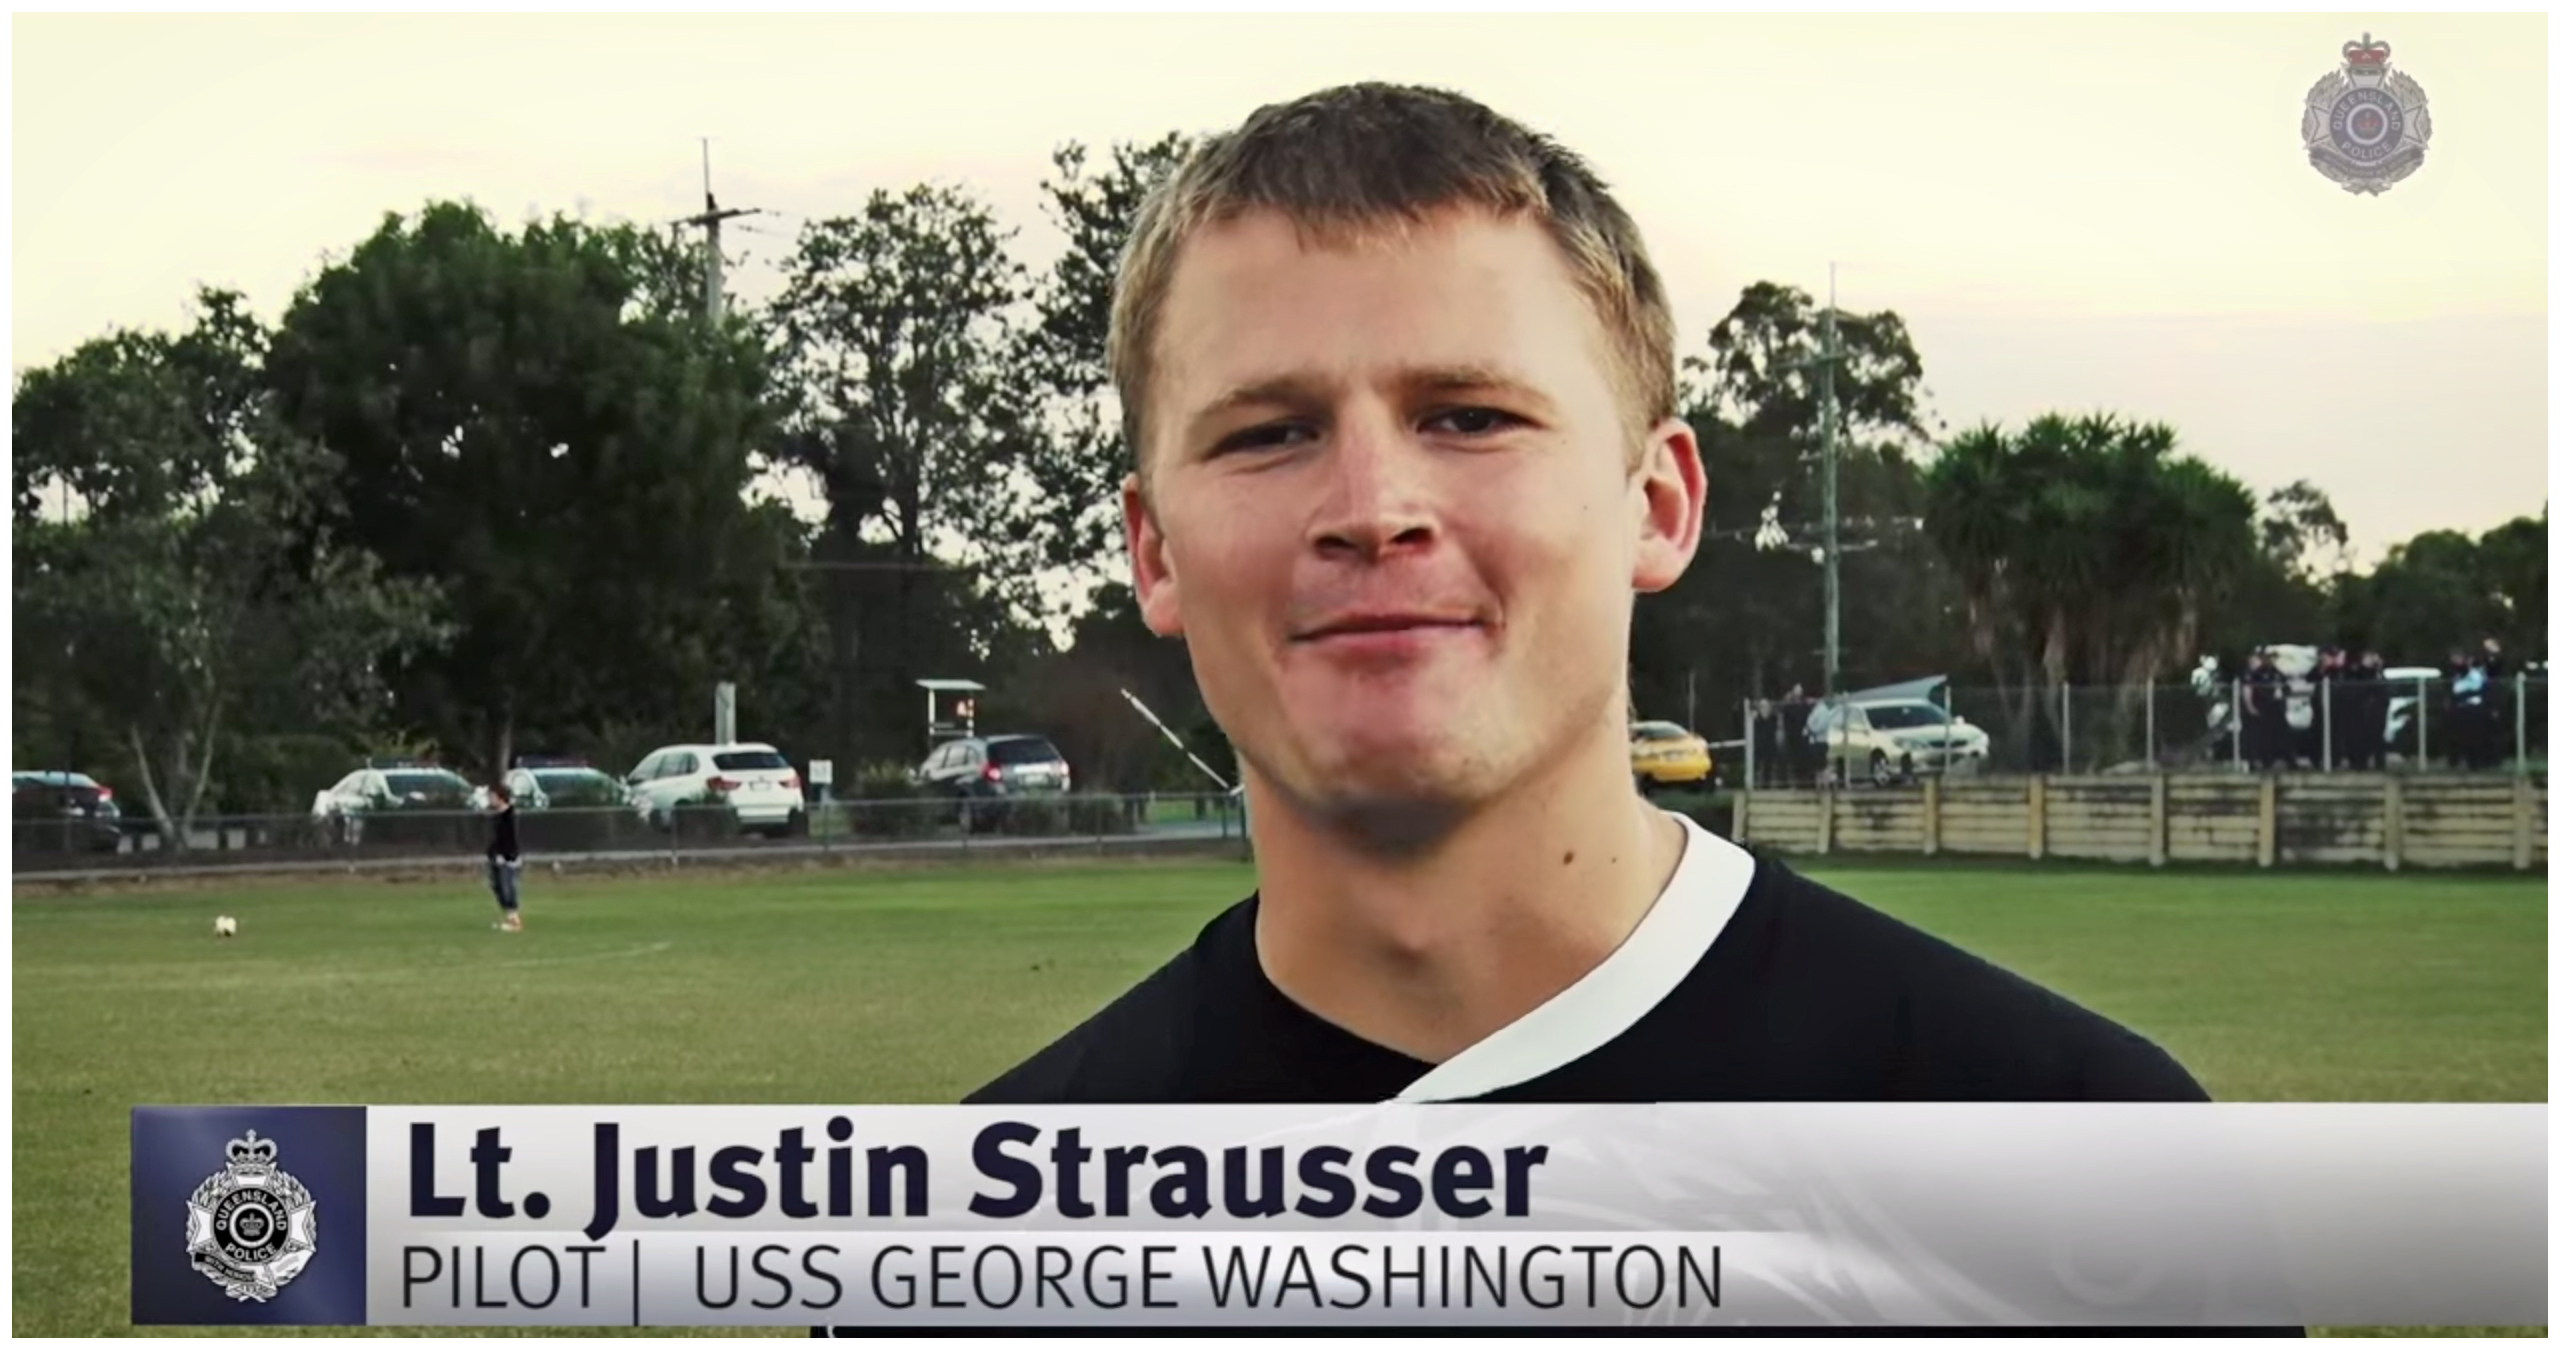 US Navy Pilot Justin Strausser from USS George Washington